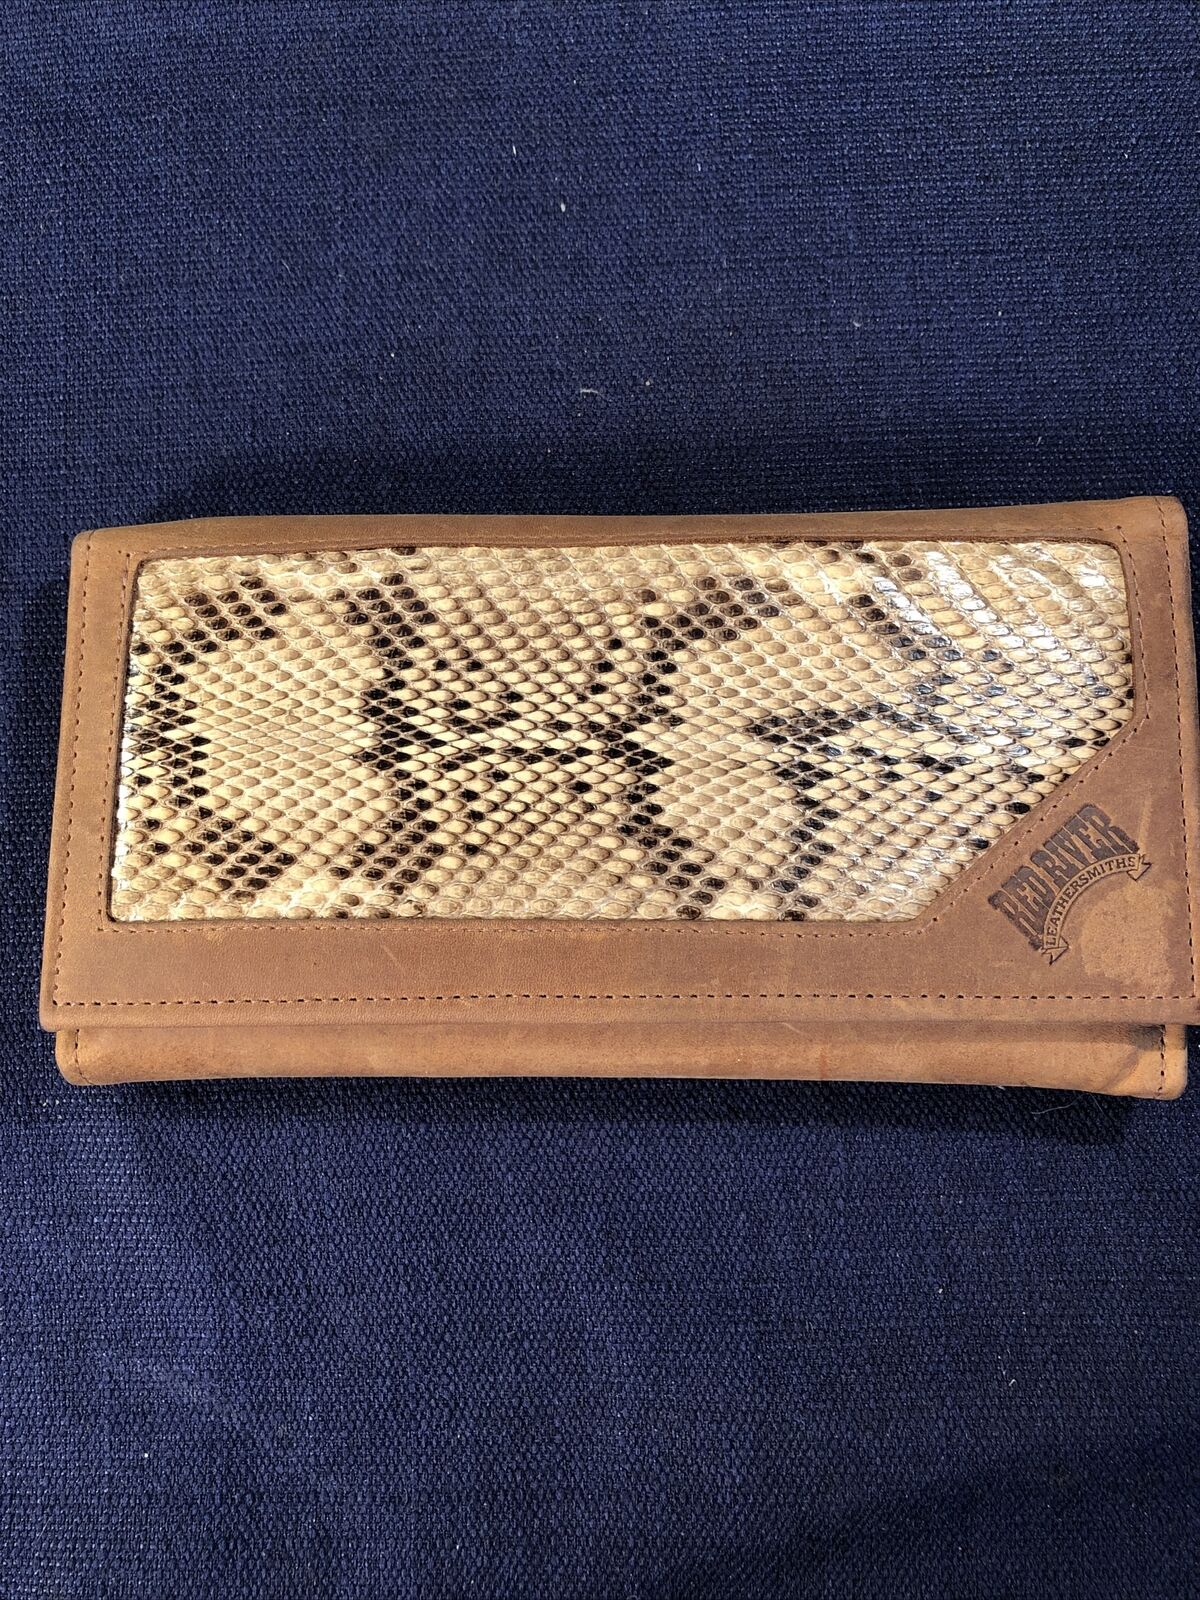 Leather And Snakeskin Check Book Holder Red River Leathersmiths Un Used